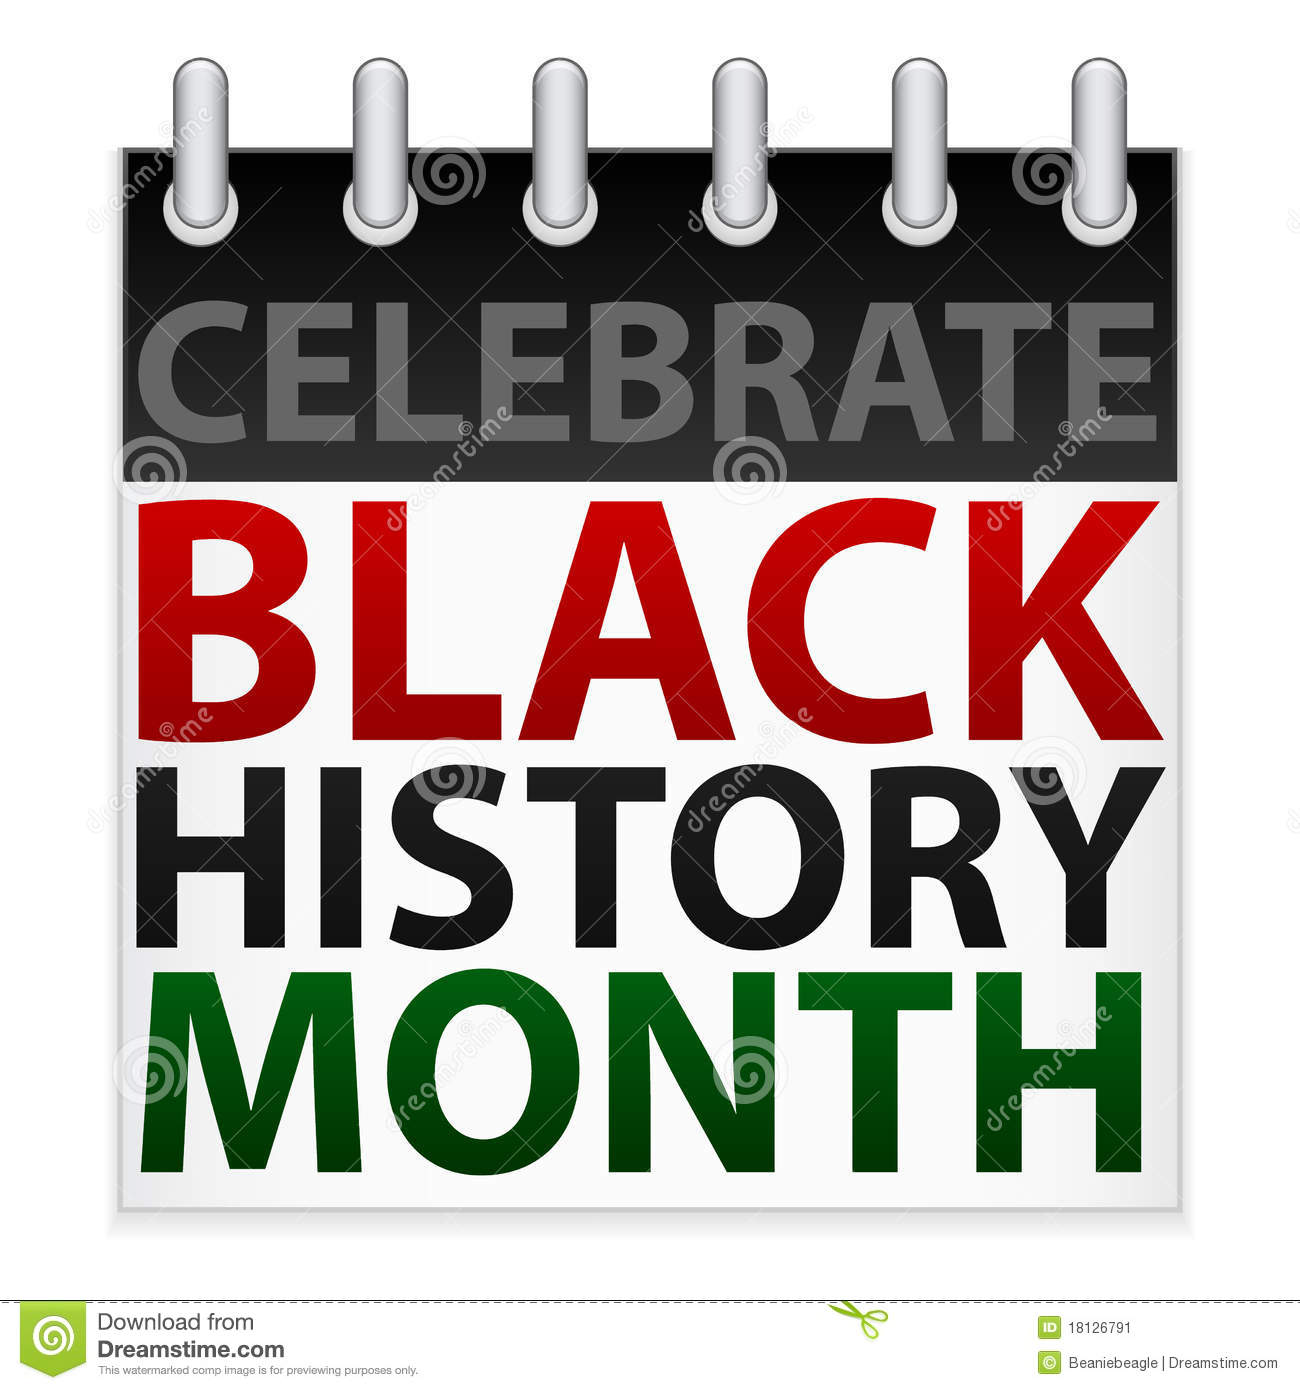 Black History Images Free Group with 72+ items.